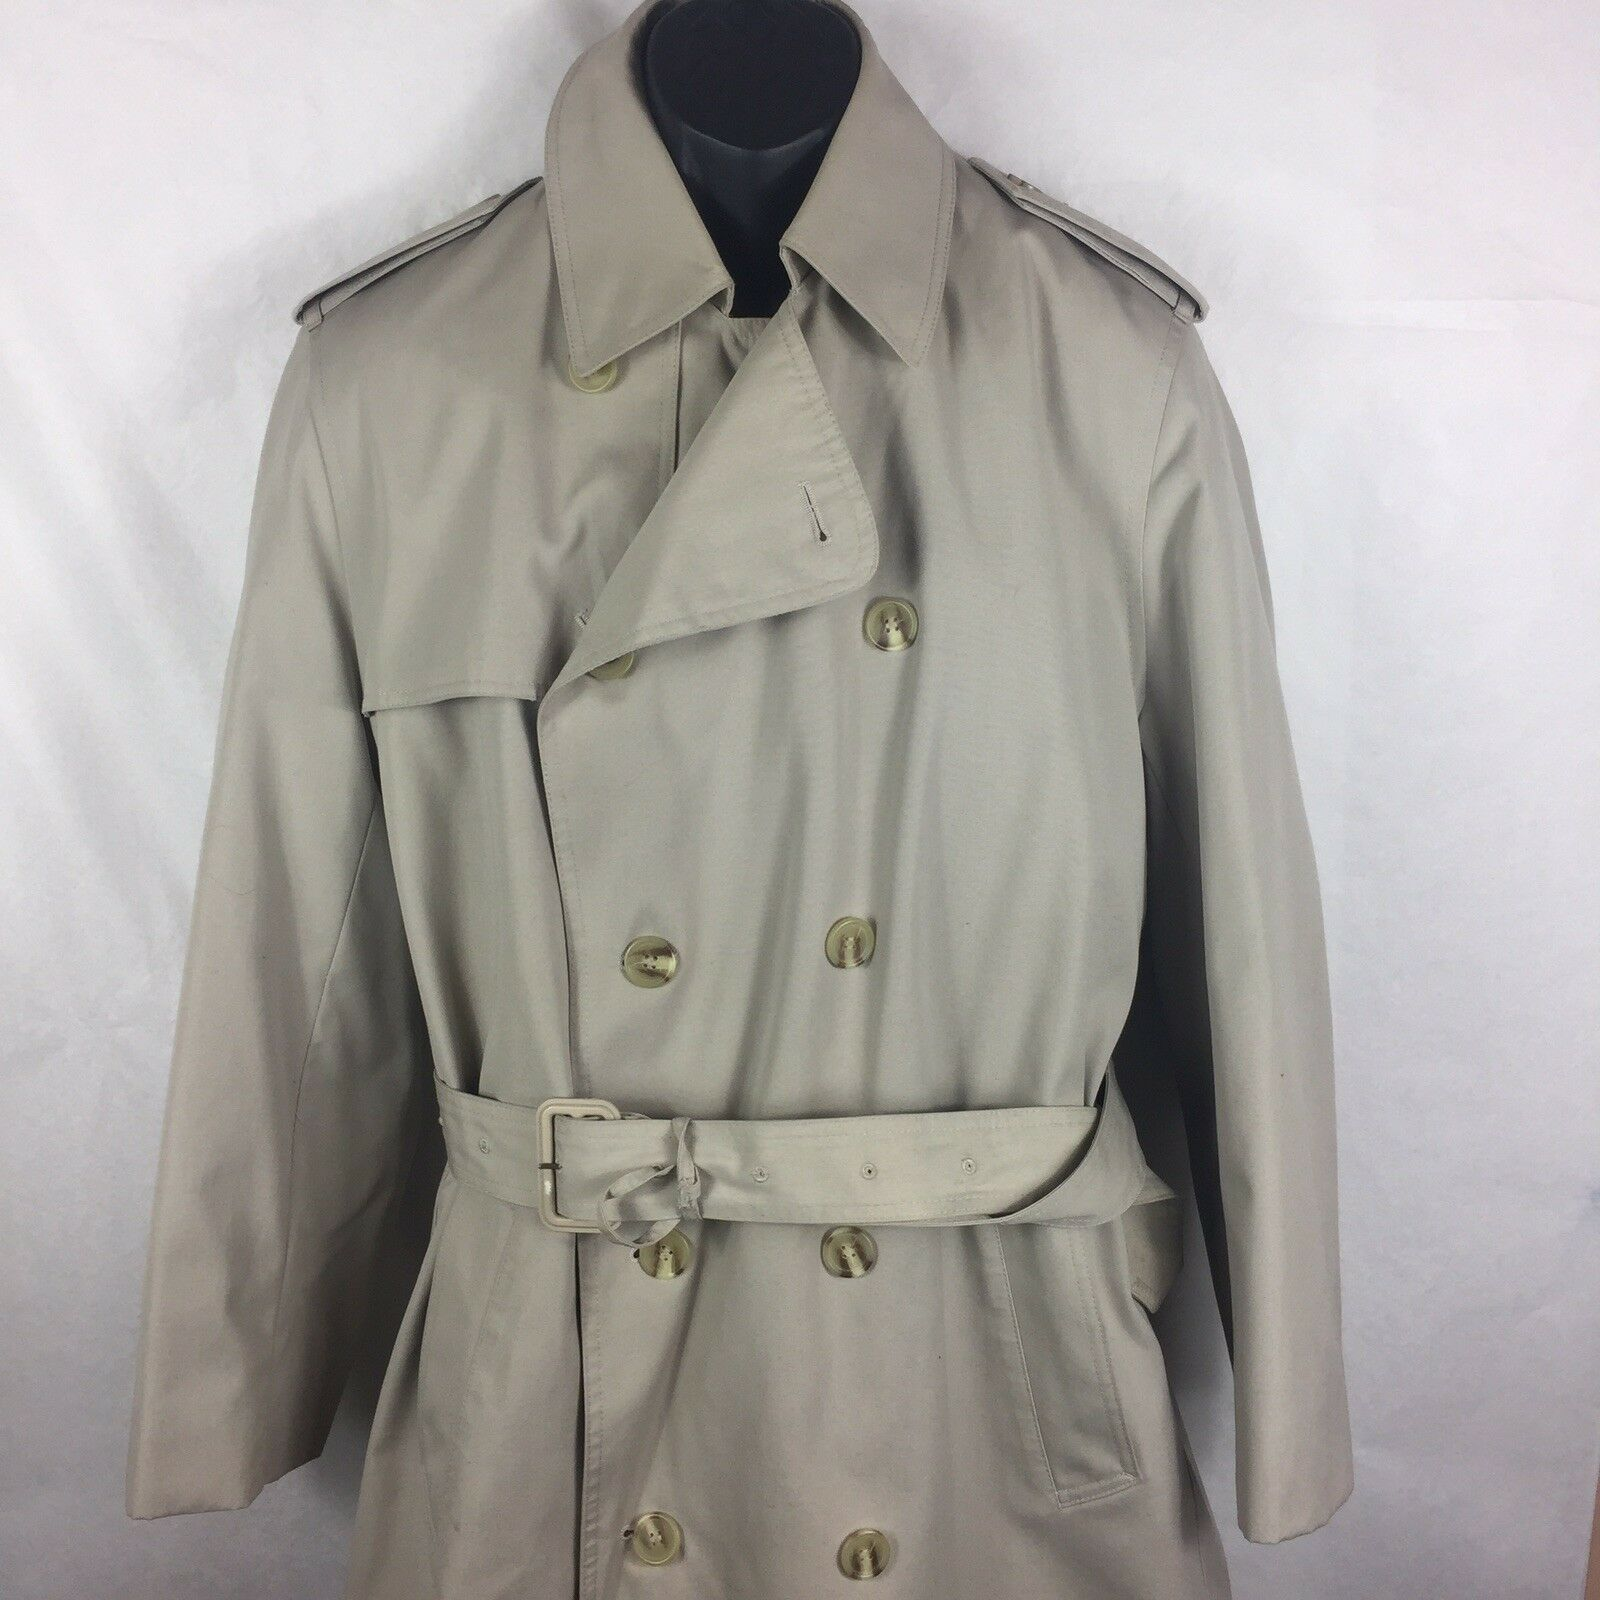 Misty Harbor 40 Mens Coat Beige Raincoat Zip Lining Trench